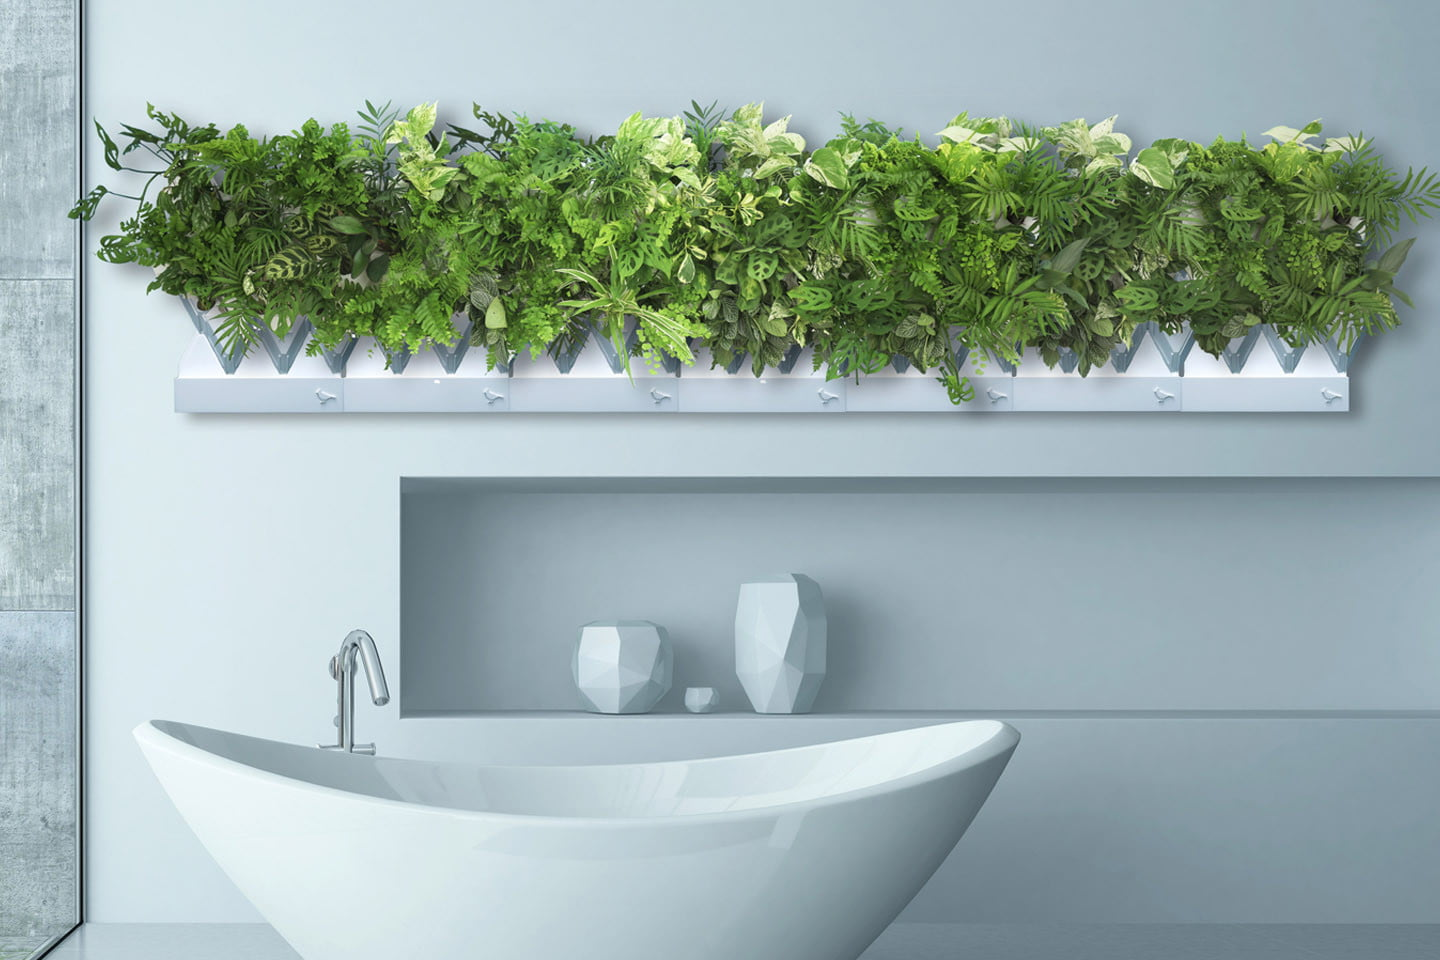 plug and plant is an easy to grow vertical garden green 003